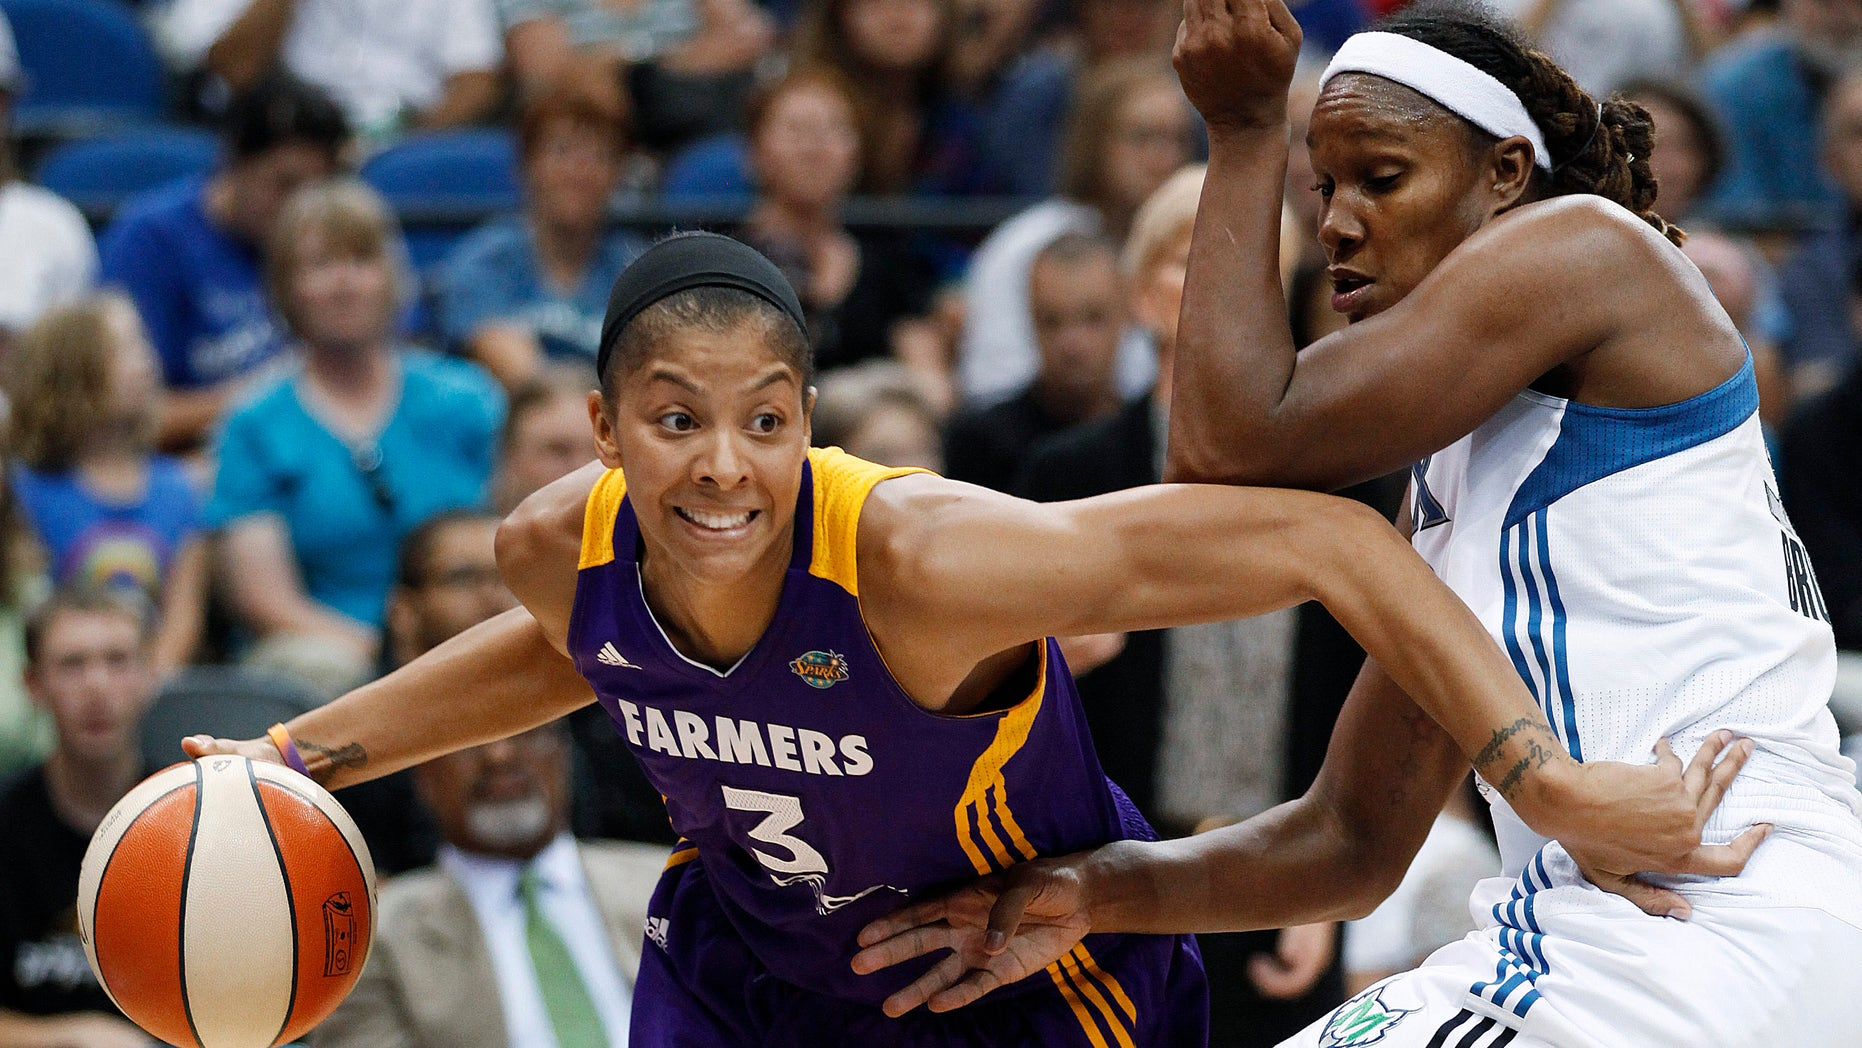 FILE - In this Sept. 4, 2012 file photo, Los Angeles Sparks forward Candace Parker (3) drives past Minnesota Lynx forward Rebekkah Brunson during the second half of a WNBA basketball game in Minneapolis. Parker is ready to resume her pursuit of the only major title to elude her.   (AP Photo/Stacy Bengs, File)